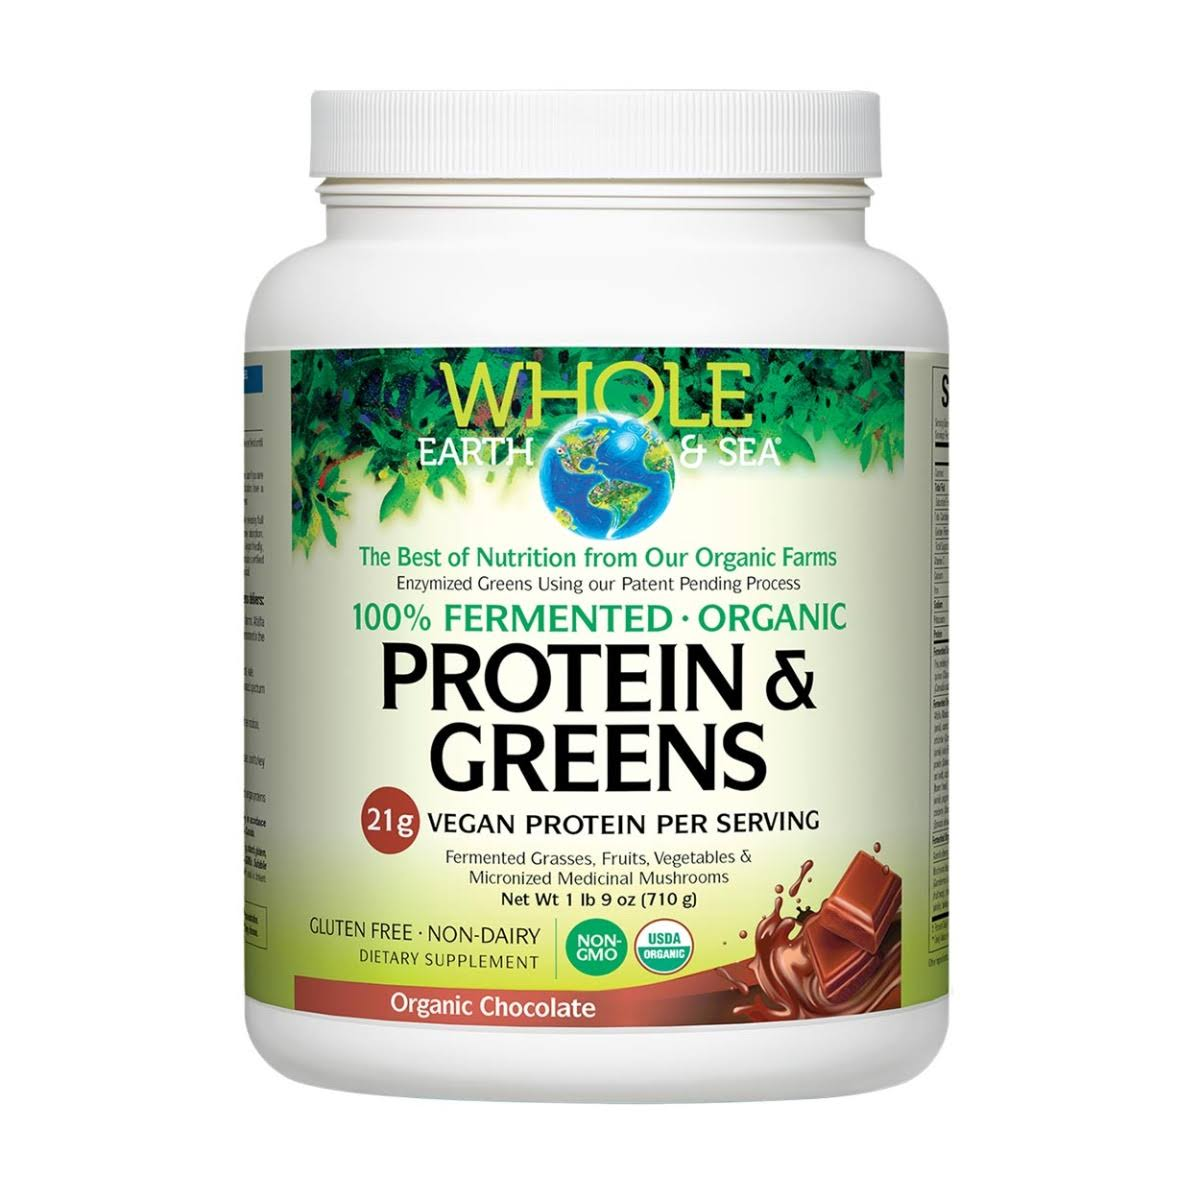 Whole Earth & Sea Fermented Organic Protein & Greens - Chocolate 25oz